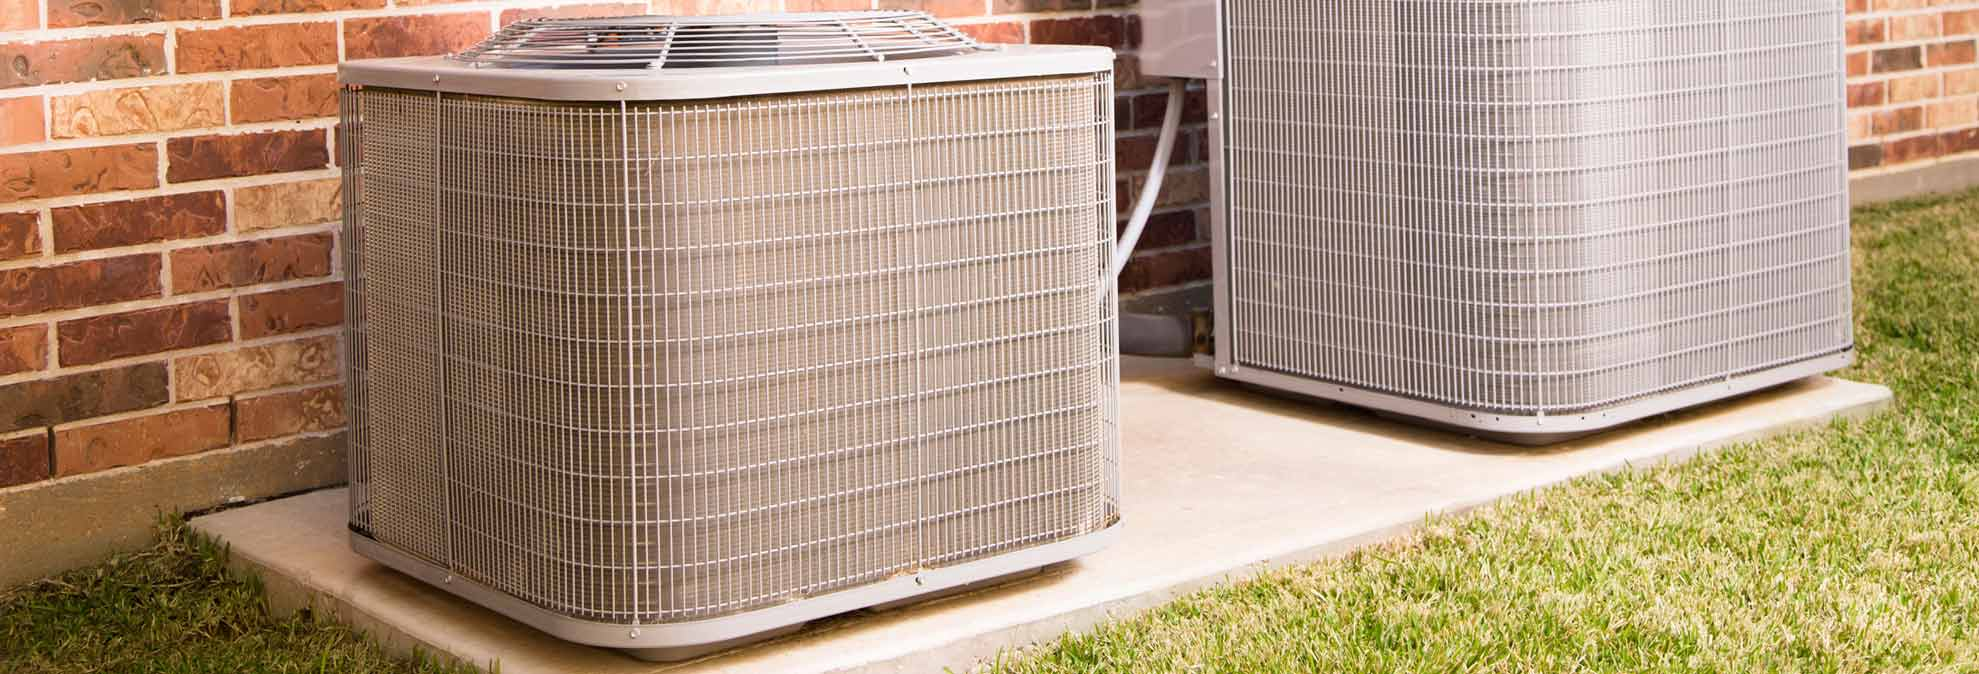 best central air conditioning buying guide - consumer reports